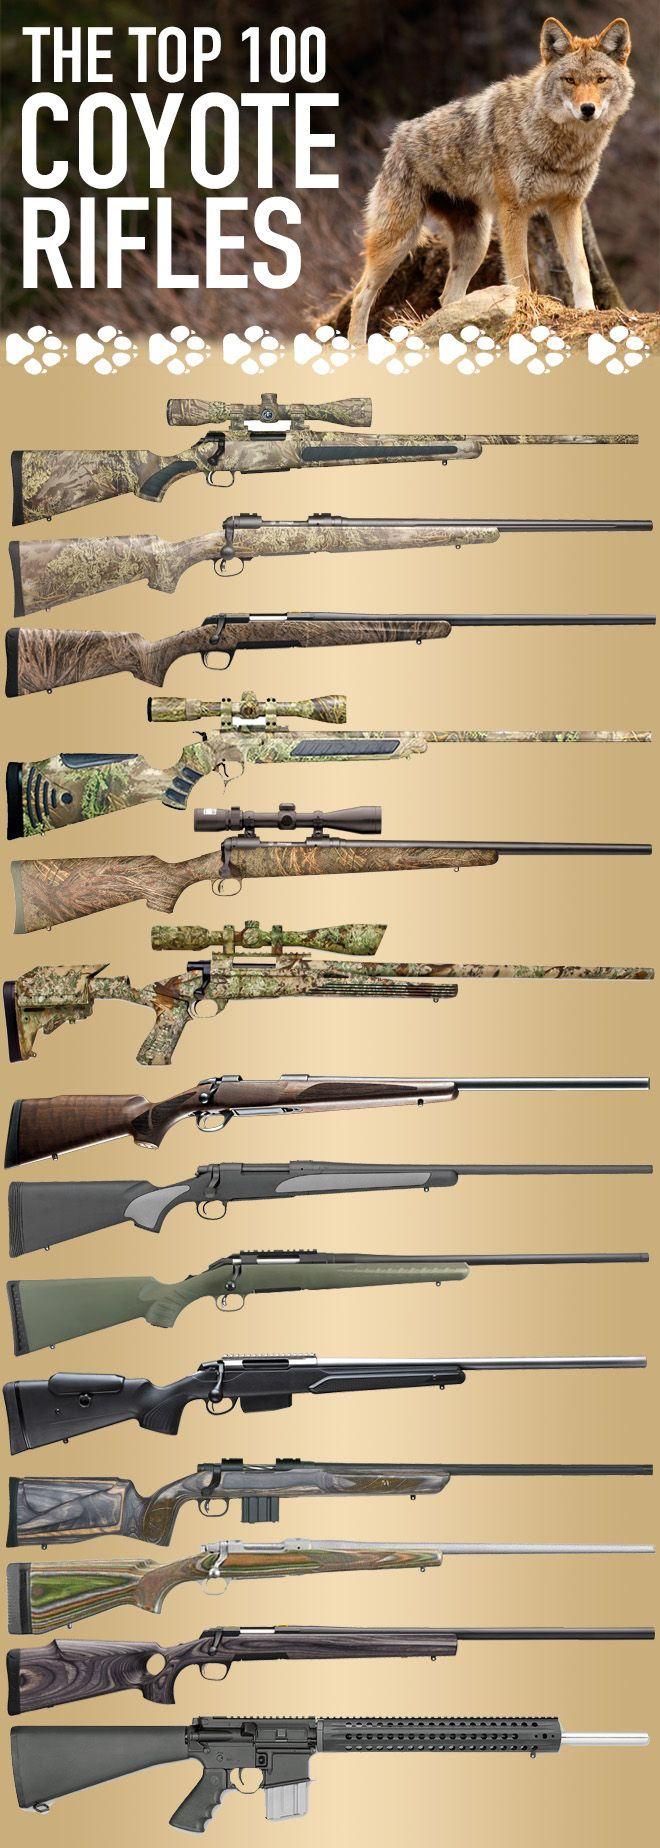 Finding the best coyote gun is an impossible task. There doesn't yet exist the perfect weapon for slaying song dogs in every situation. Debates will rage on about what's the best caliber, the best loads, and of course the best way to hunt coyotes! This li